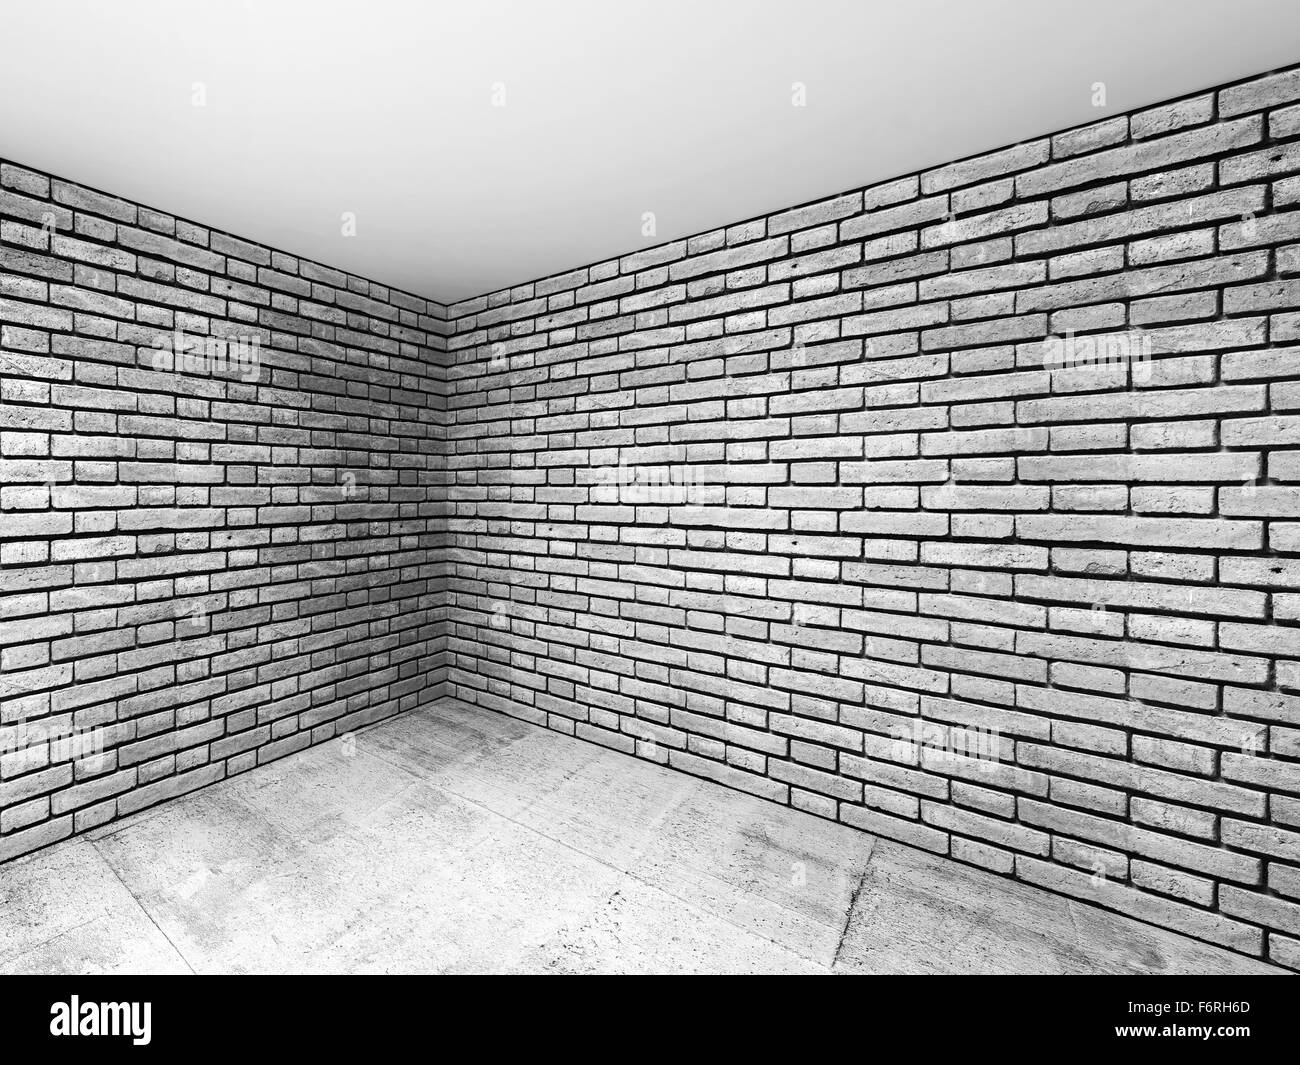 Empty Room Interior With Gray Brick Walls And Concrete